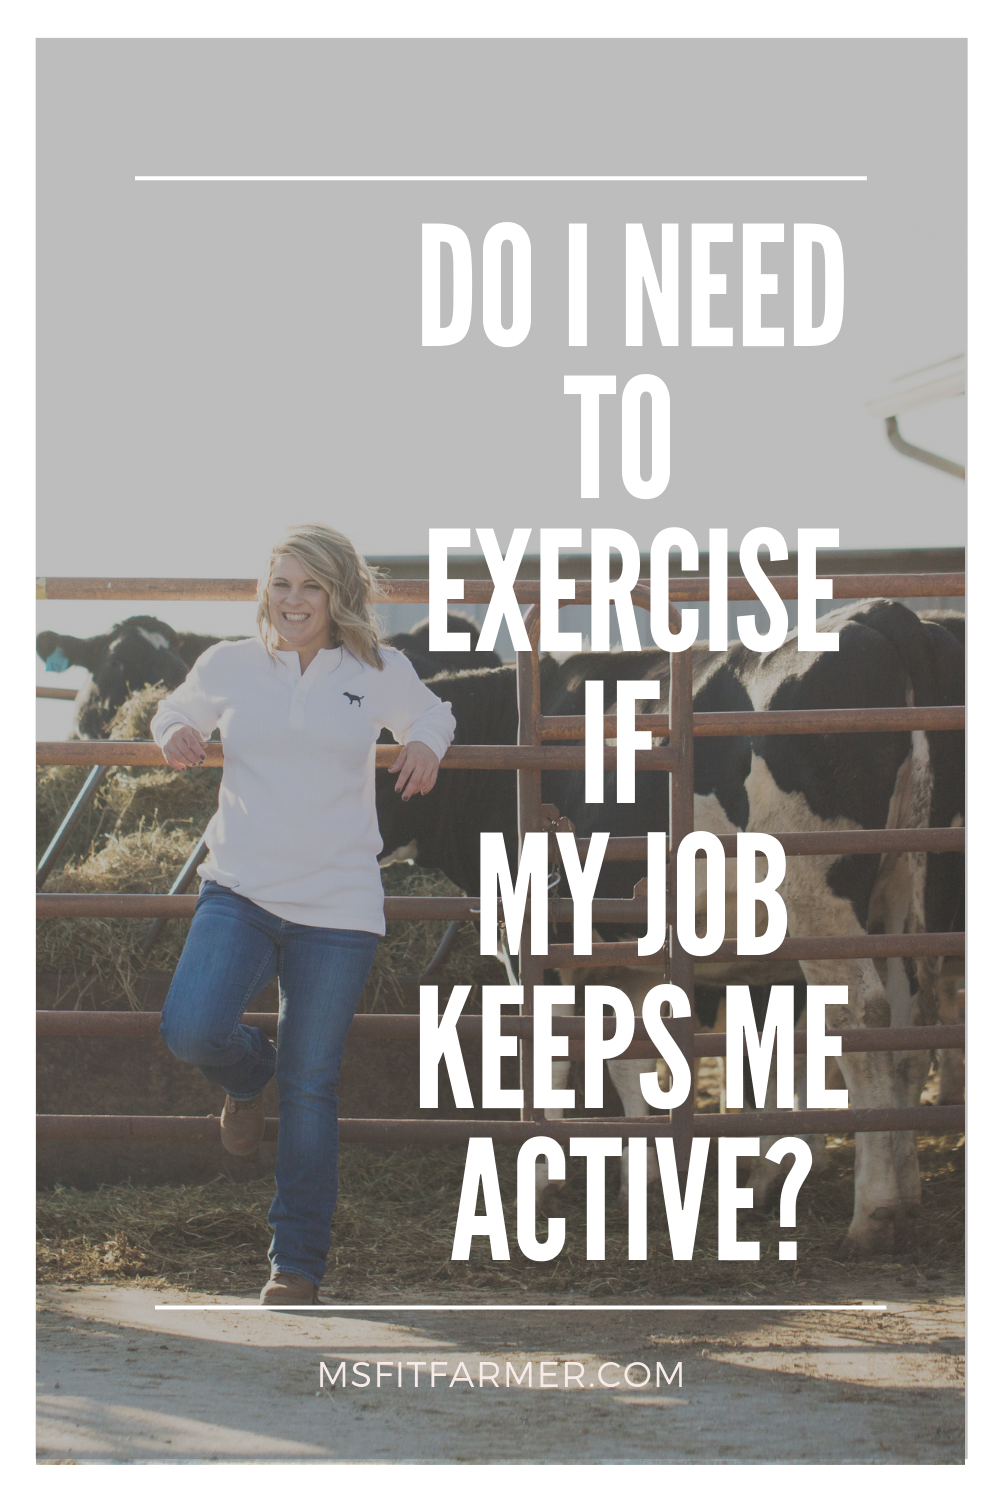 We all know how important working-out is but is exercise really that important when your job keeps you physically active? In this post we discuss the benefits of exercising even with a physically active job. We deep dive into what functional fitness is; how you can incorporate functional fitness into your fitness routine to increase your body\'s endurance, making your everyday life easier! Click to read the full article on the importance of training for life! #functionalfitness #active